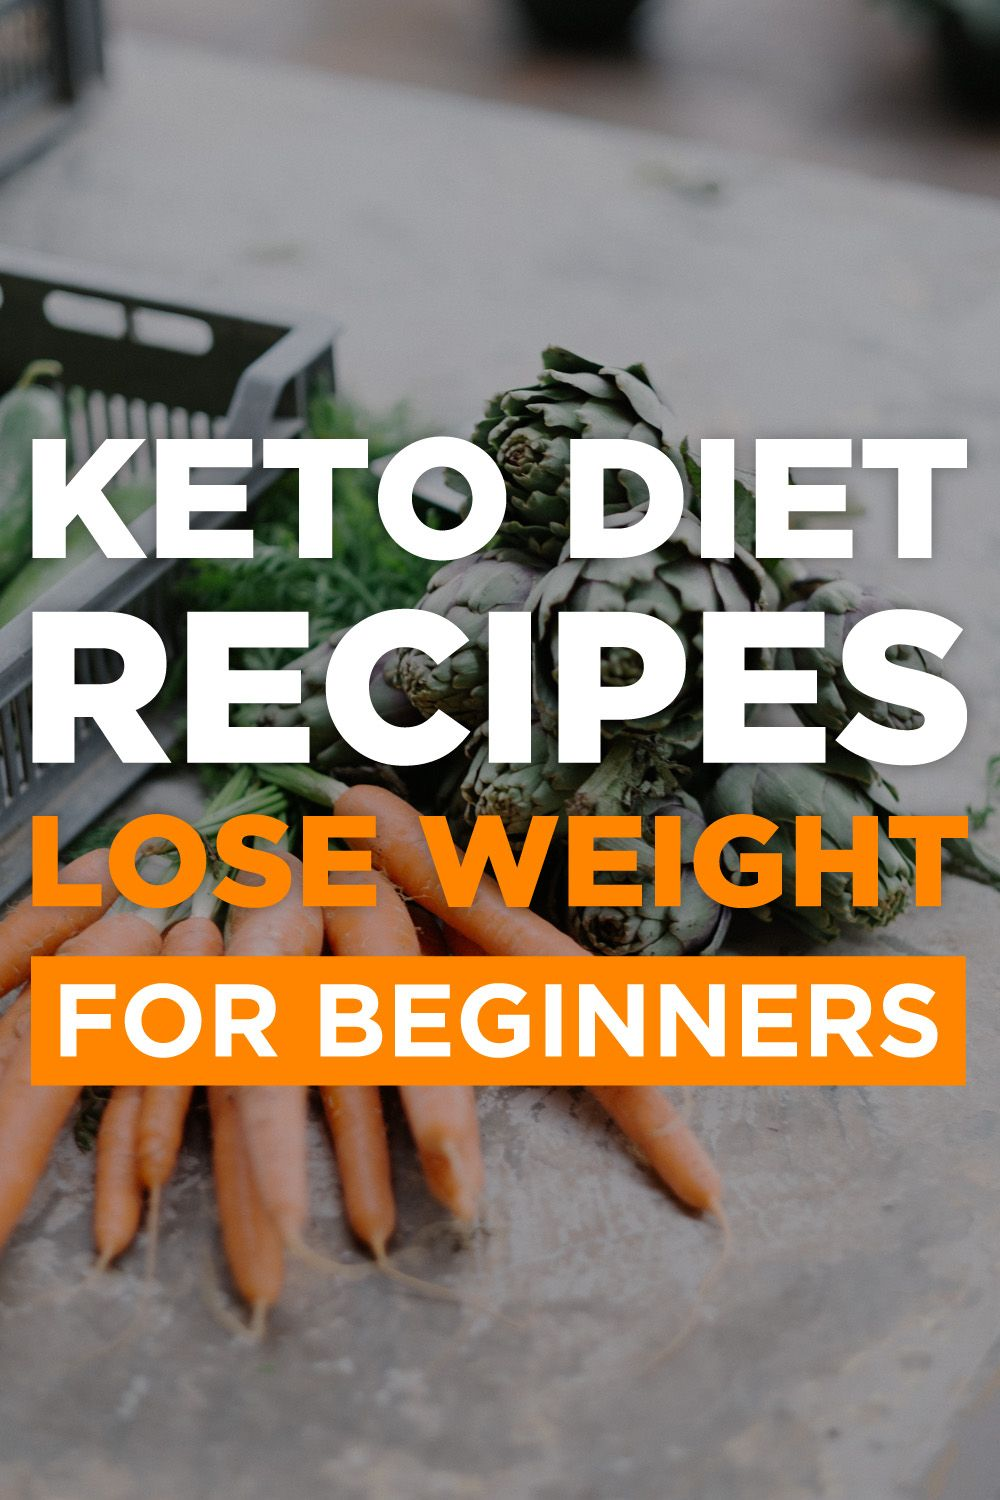 no carb foods, smothi for weight loss, medeteranian diet recipes, keto diet recipes – Carey&CleanEatingS